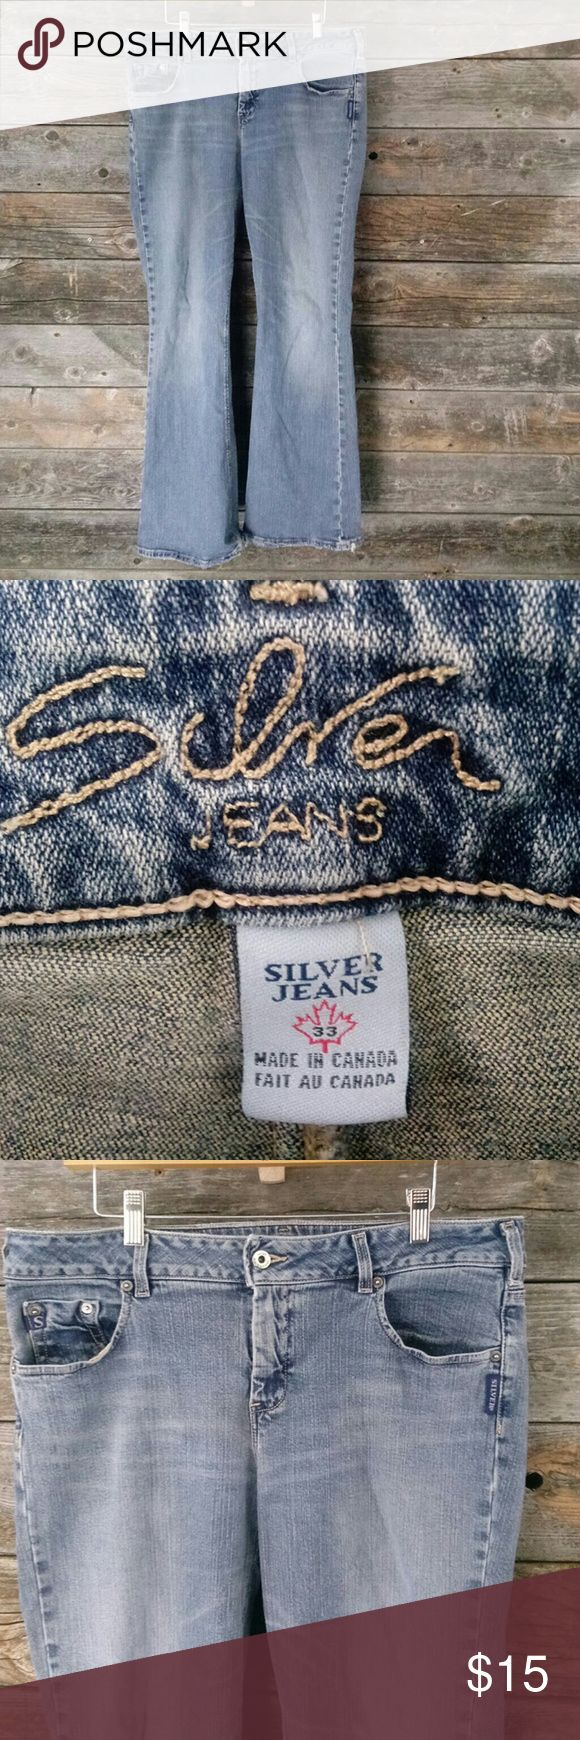 Silver jeans size 33 (size 15/17) flare leg jeans Silver jeans size 33 (size 15/17) flare leg jeans. Has fray on bottom of legs. Has a small patch on inside top of leg as show in picture still a great pair of jeans. Silver Jeans Jeans Flare & Wide Leg